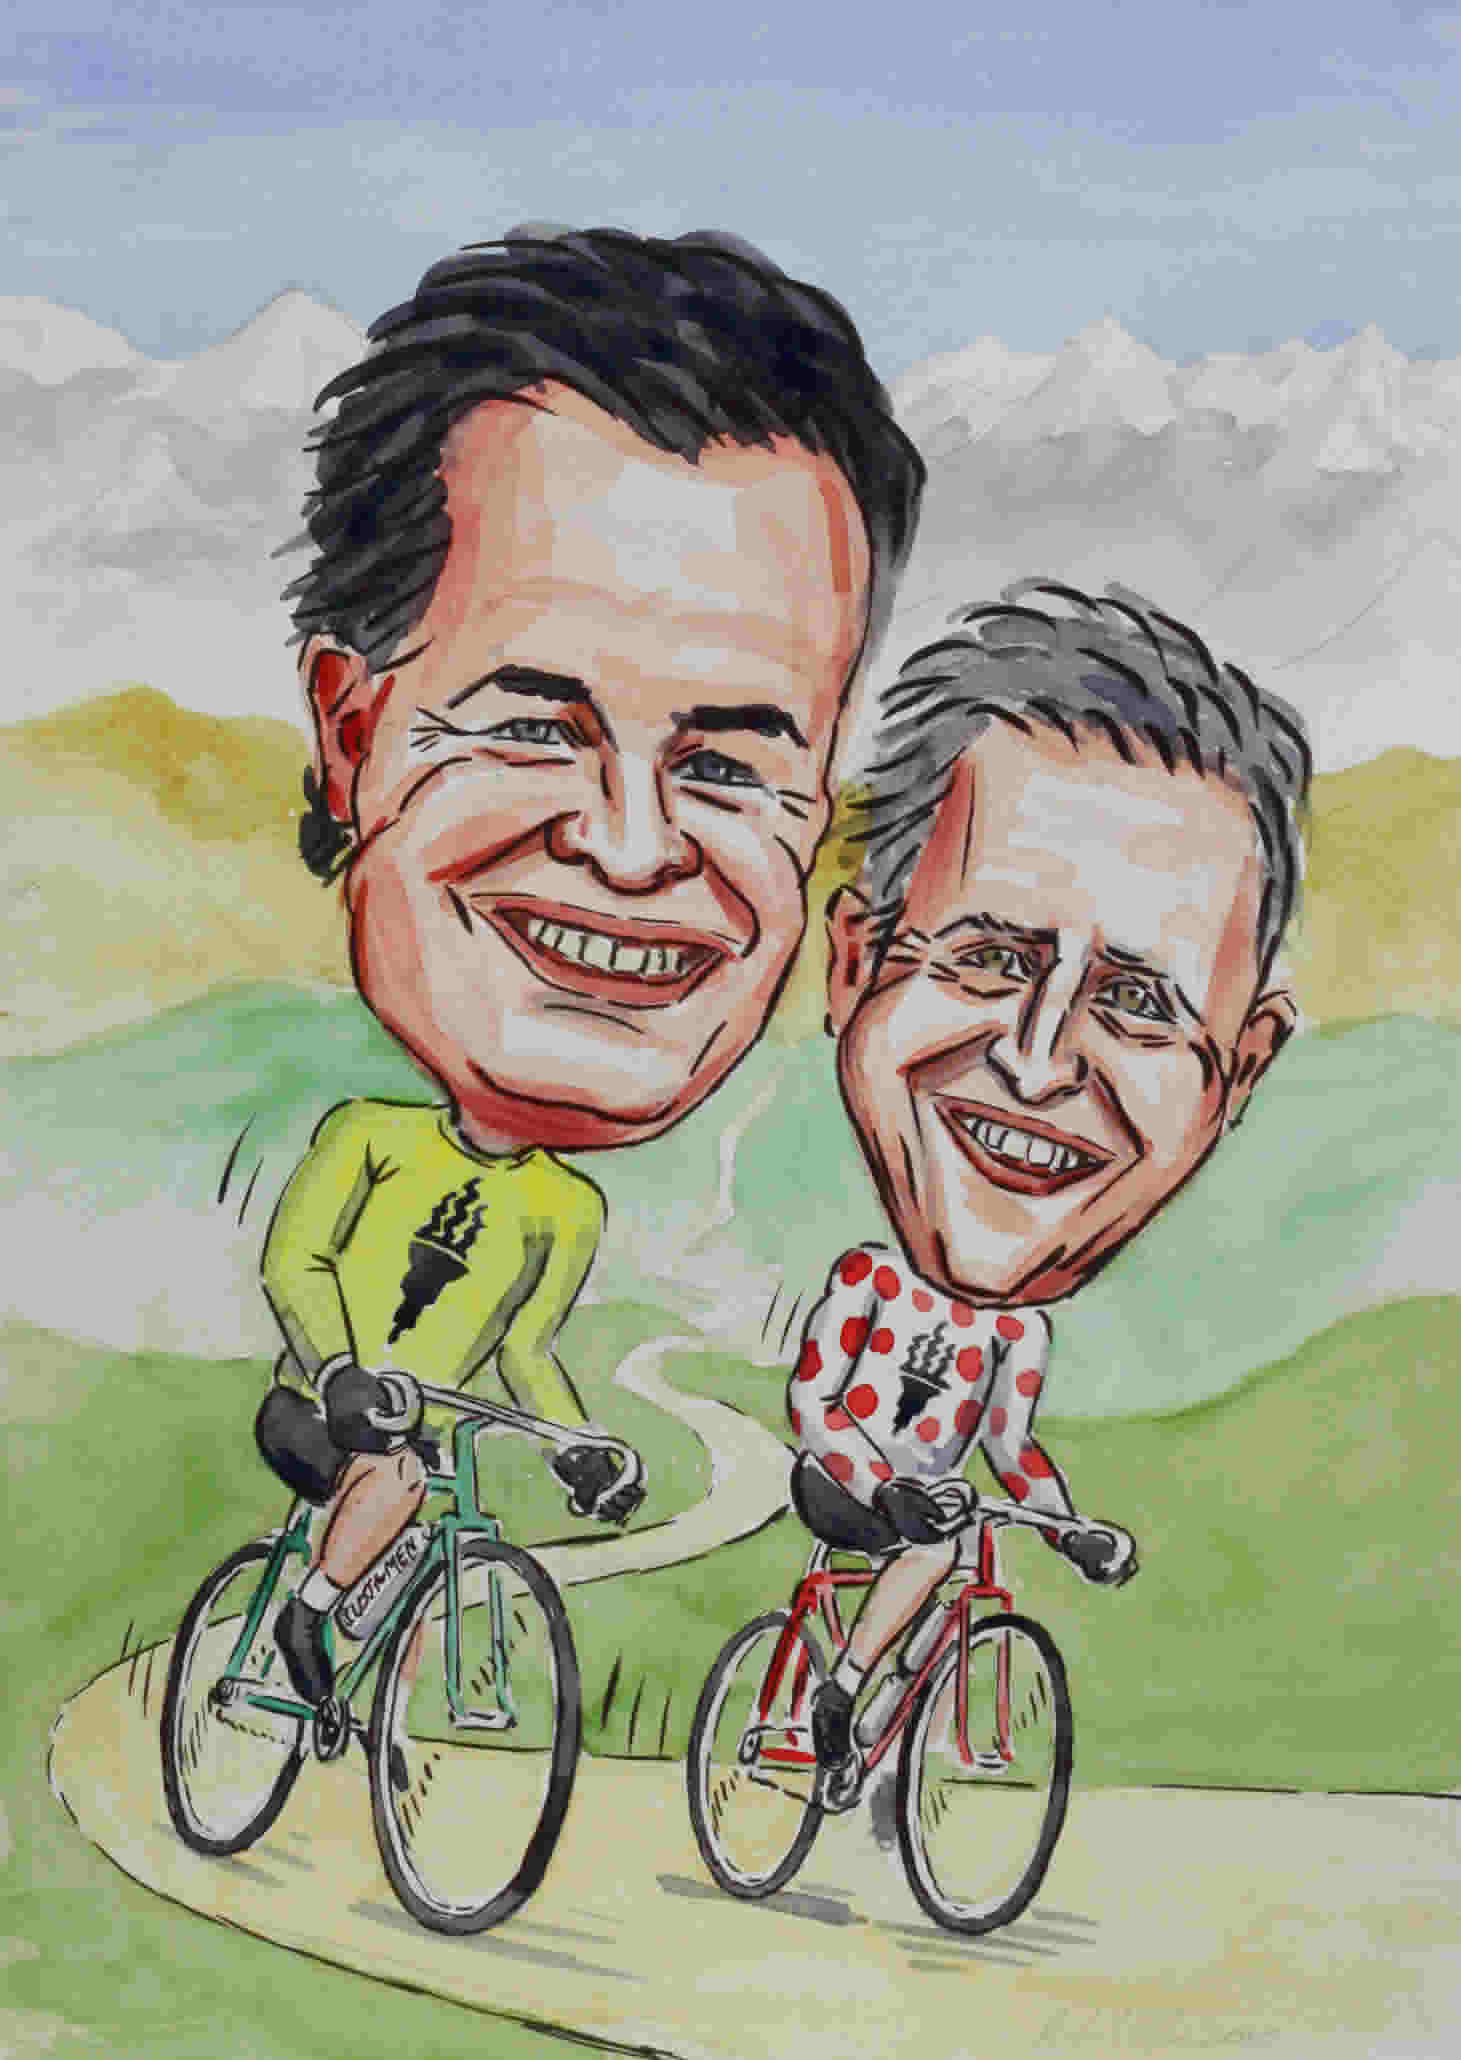 Sports caricature